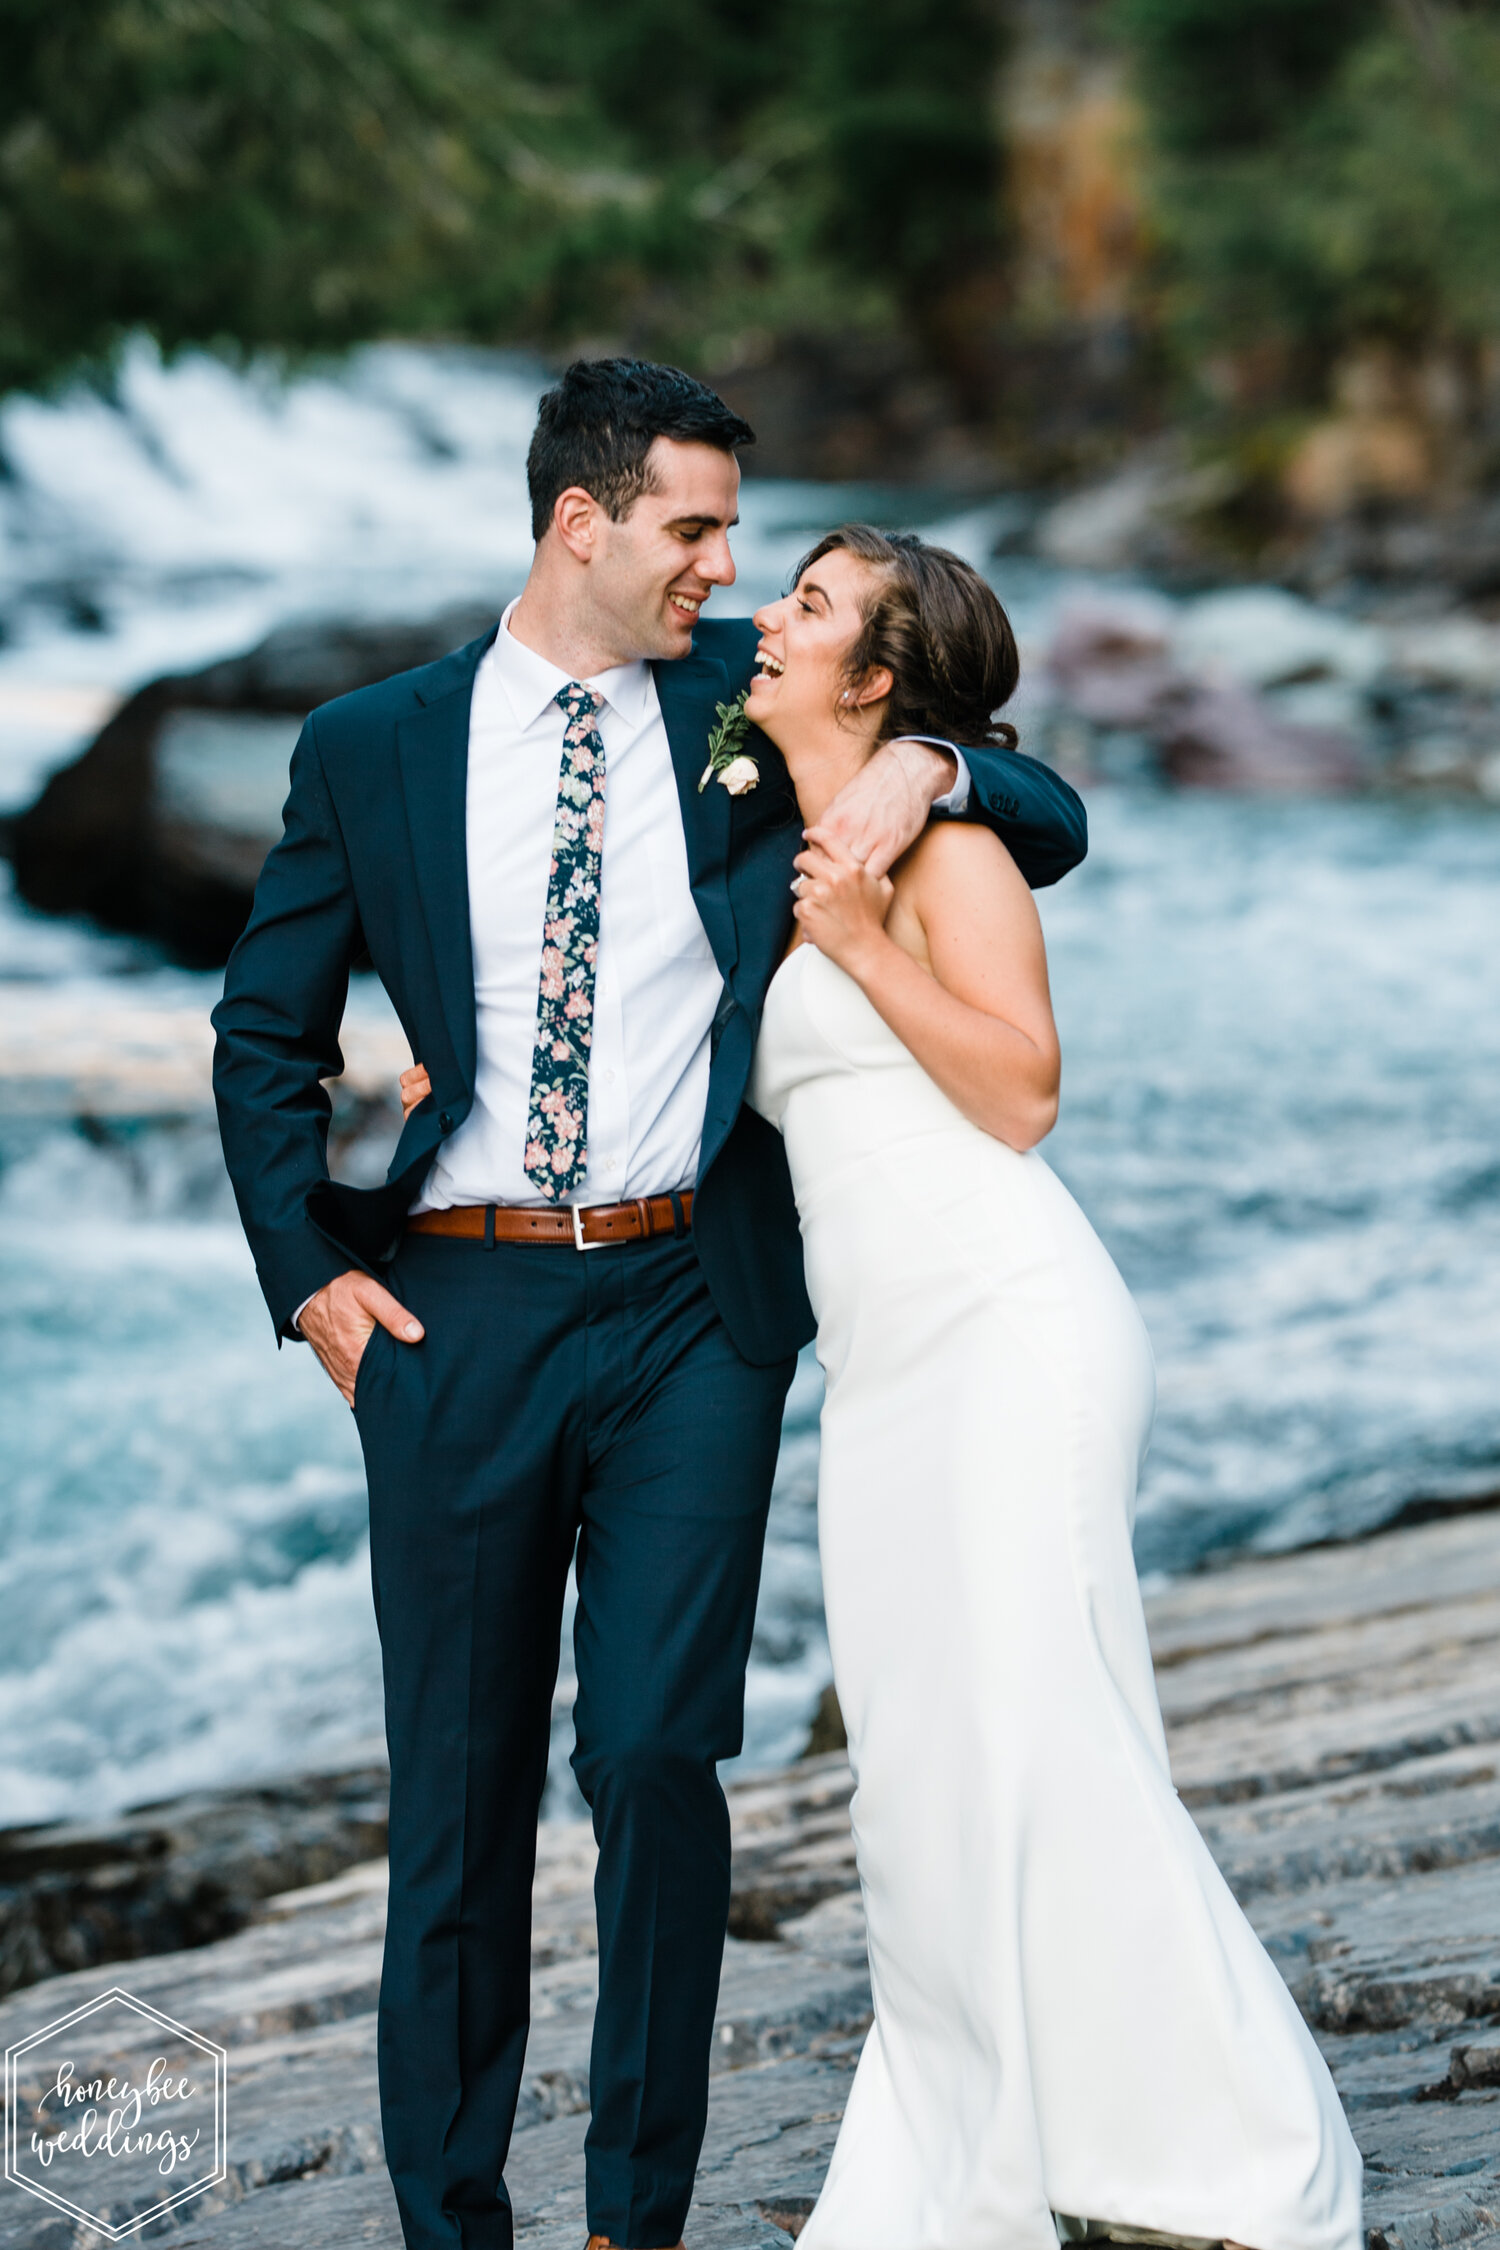 005Glacier National Park Wedding_Glacier Outdoor Center_Honeybee Weddings_Anna & Seth_July 21, 2019-1737.jpg